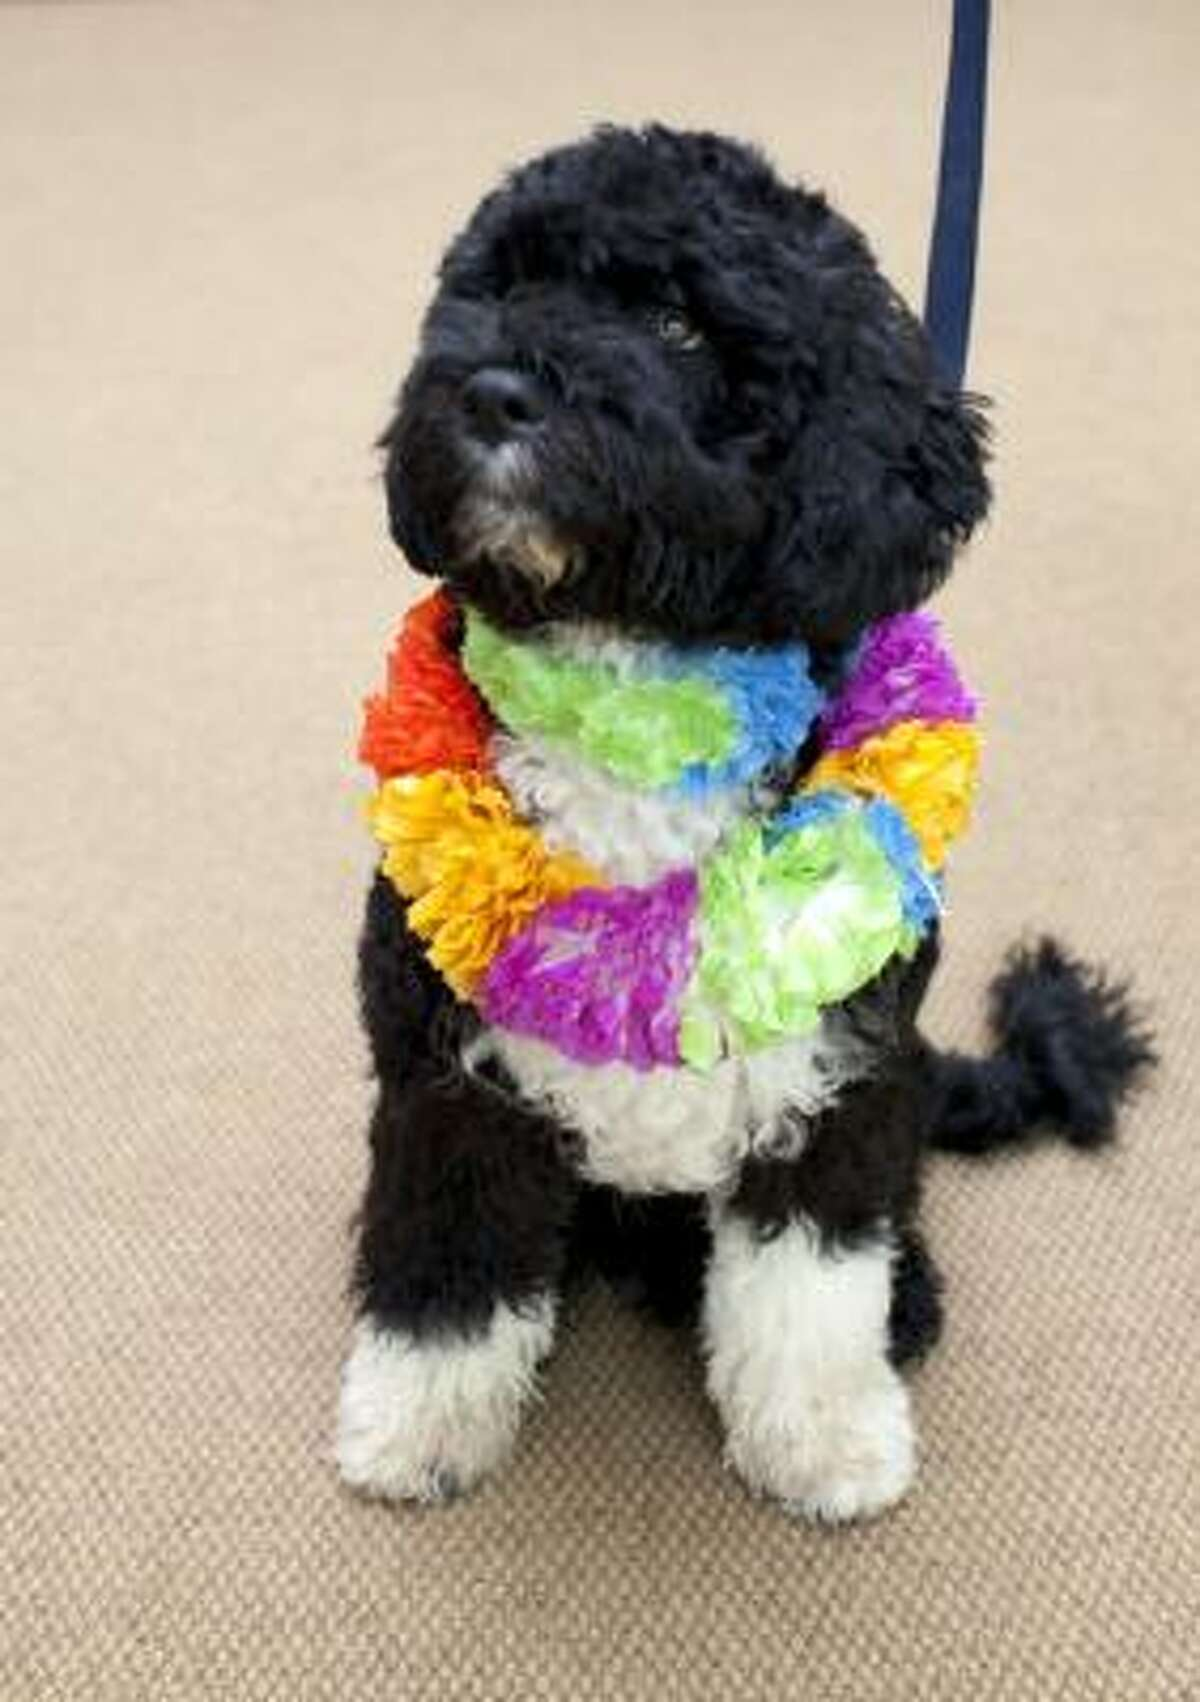 The identity of the first puppy, a six-month-old Portuguese water dog, leaked out April 11 despite White House efforts to delay the news until a planned debut.